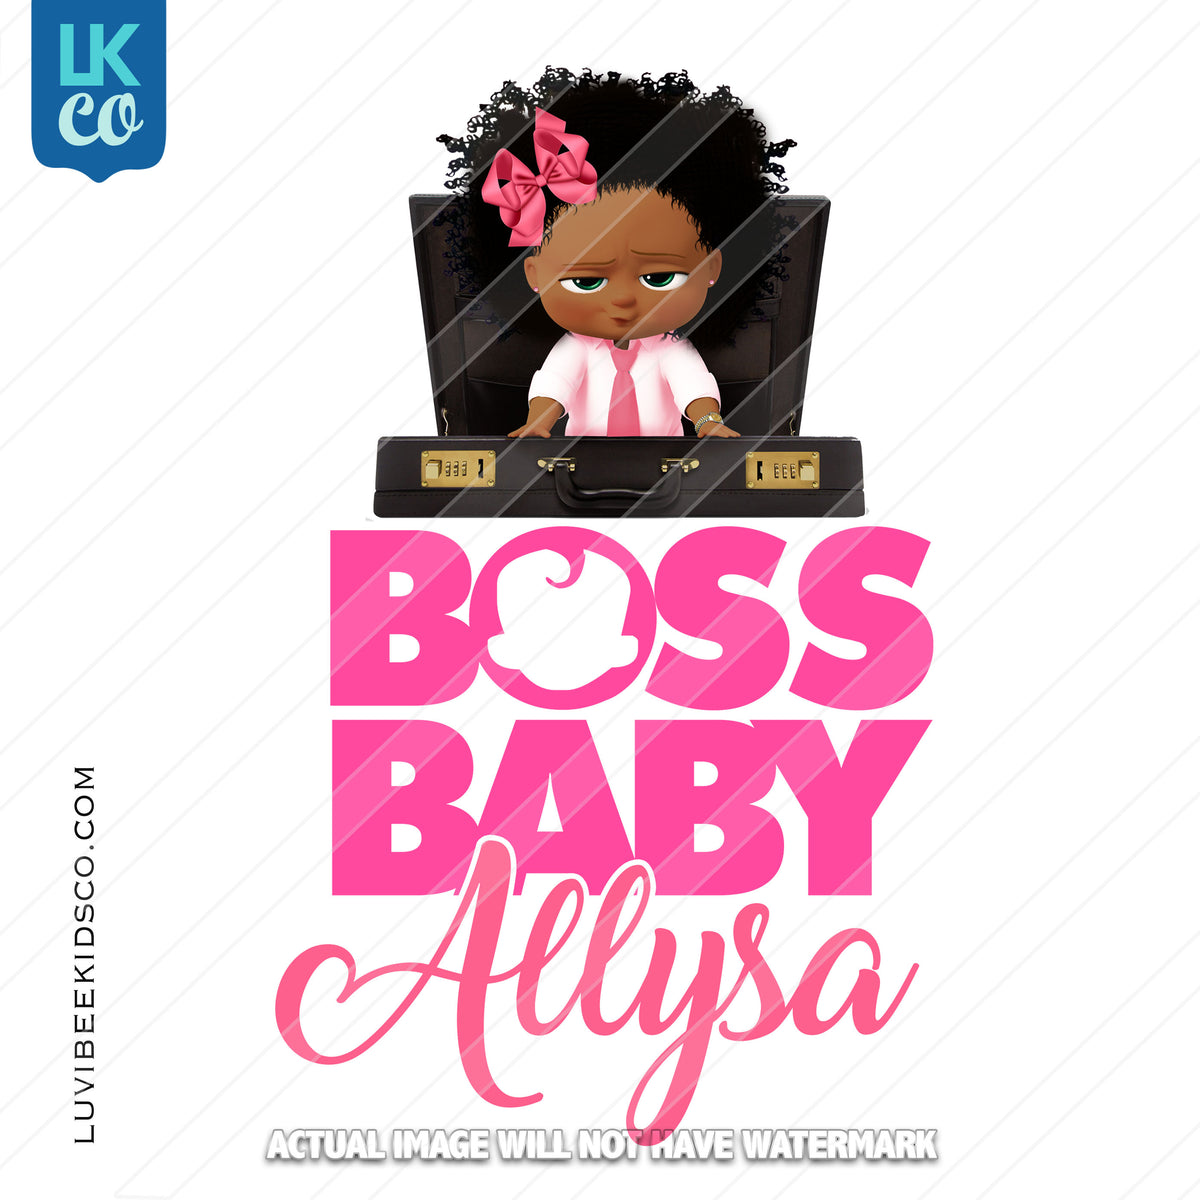 Boss Baby Iron On Transfer African American Girl Briefcase